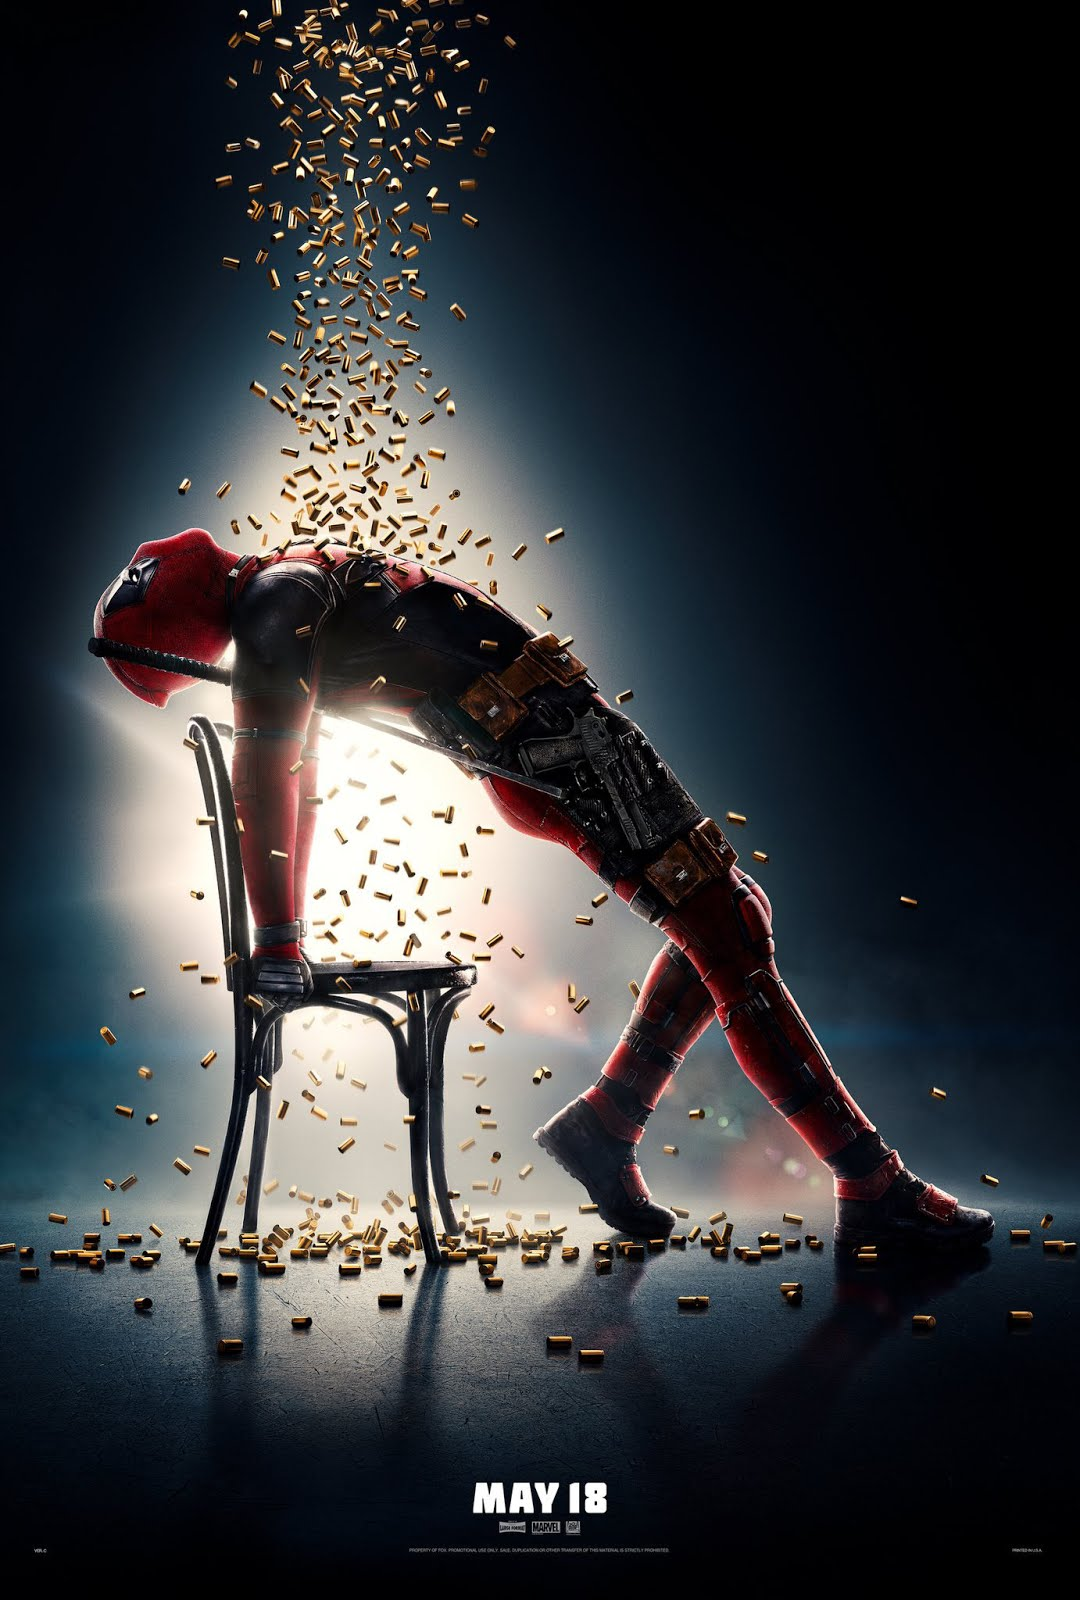 Deadpool 2 (2018) Hindi Dual Audio 500MB HDCAM-Rip 720p HEVC x265